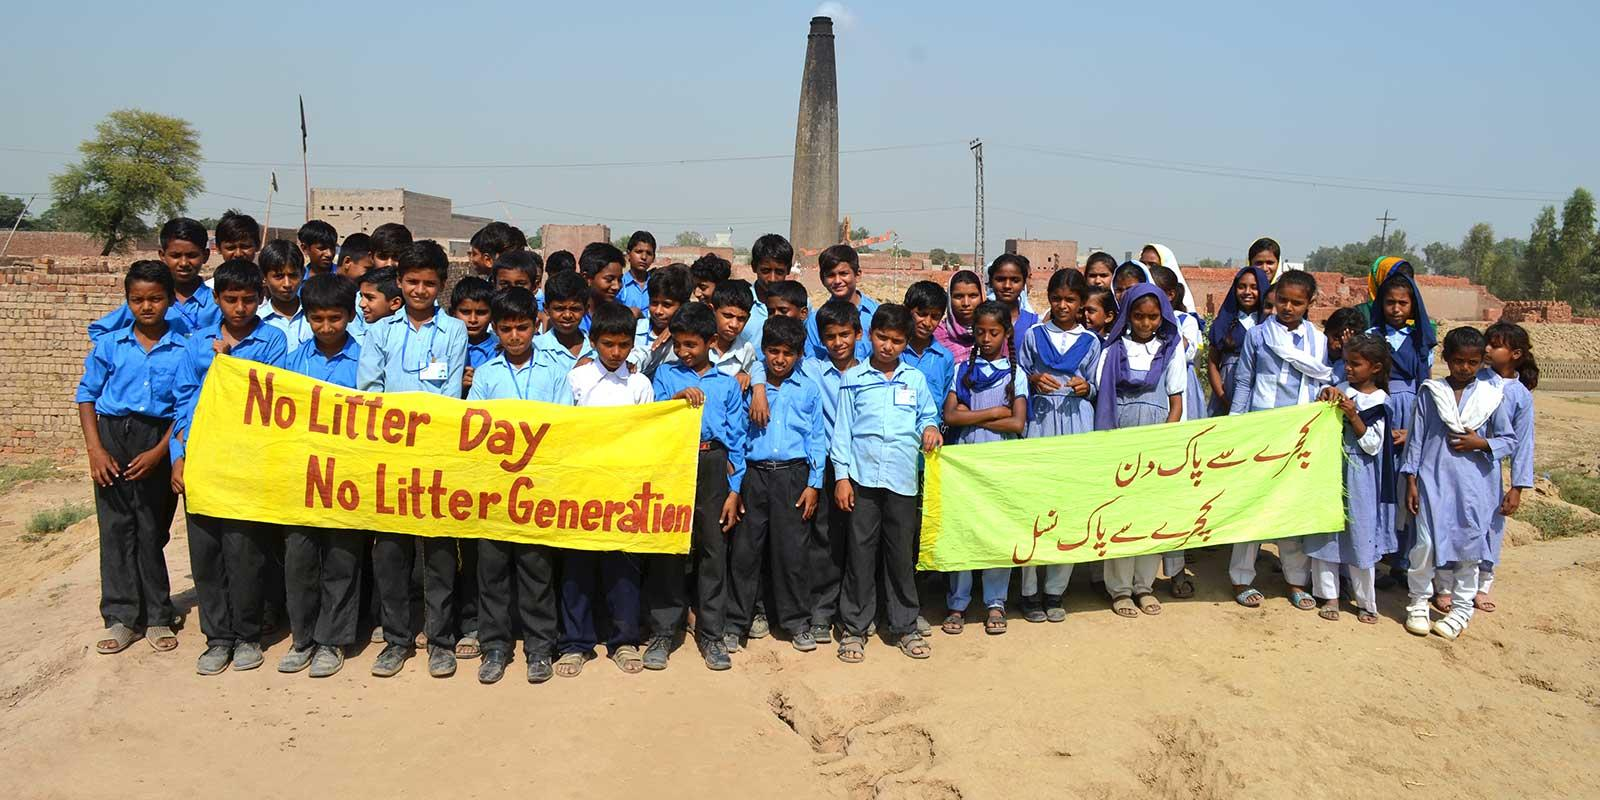 Children standing with signs saying No Litter Generation